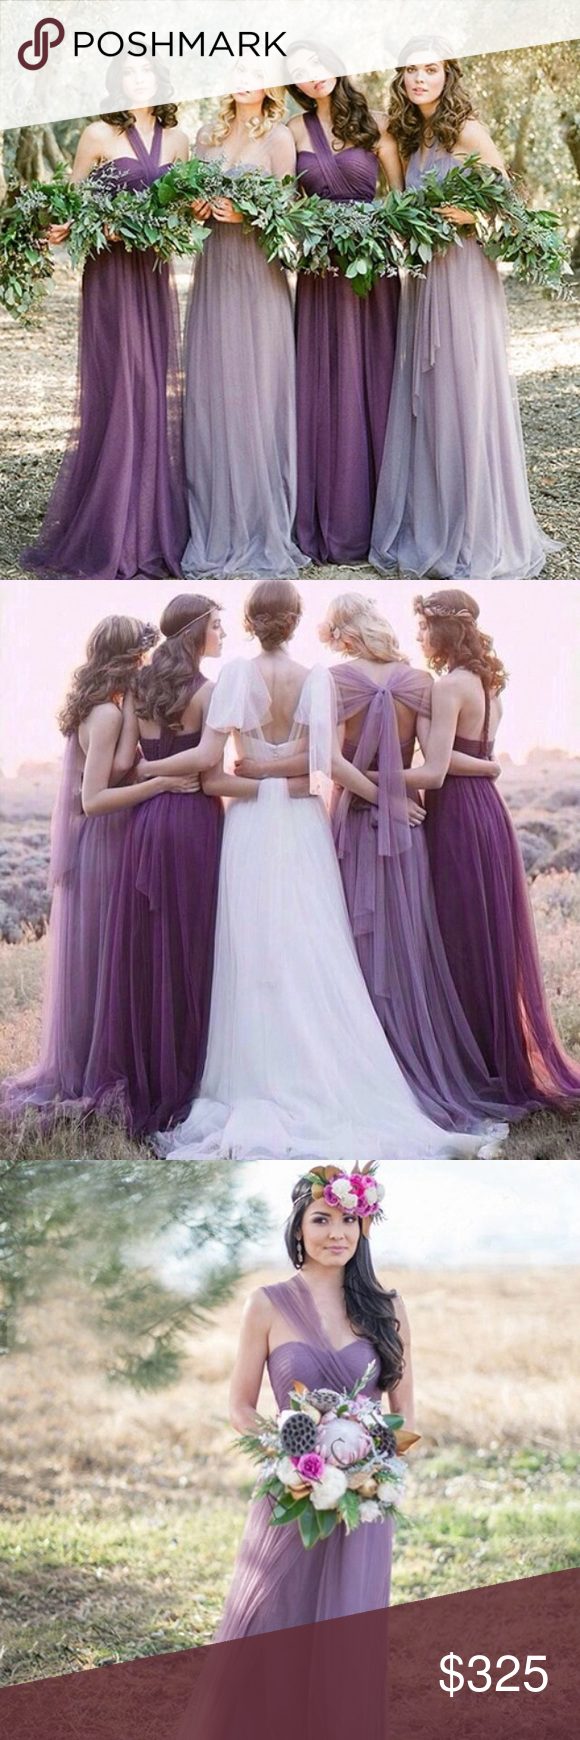 1hoursale bridesmaids dress pre order only please please let us know size needed shipment takes 8 13 days to deliver to us bridesmaids dresses specialty wedding beach wedding church wedding vows ombrellifo Image collections